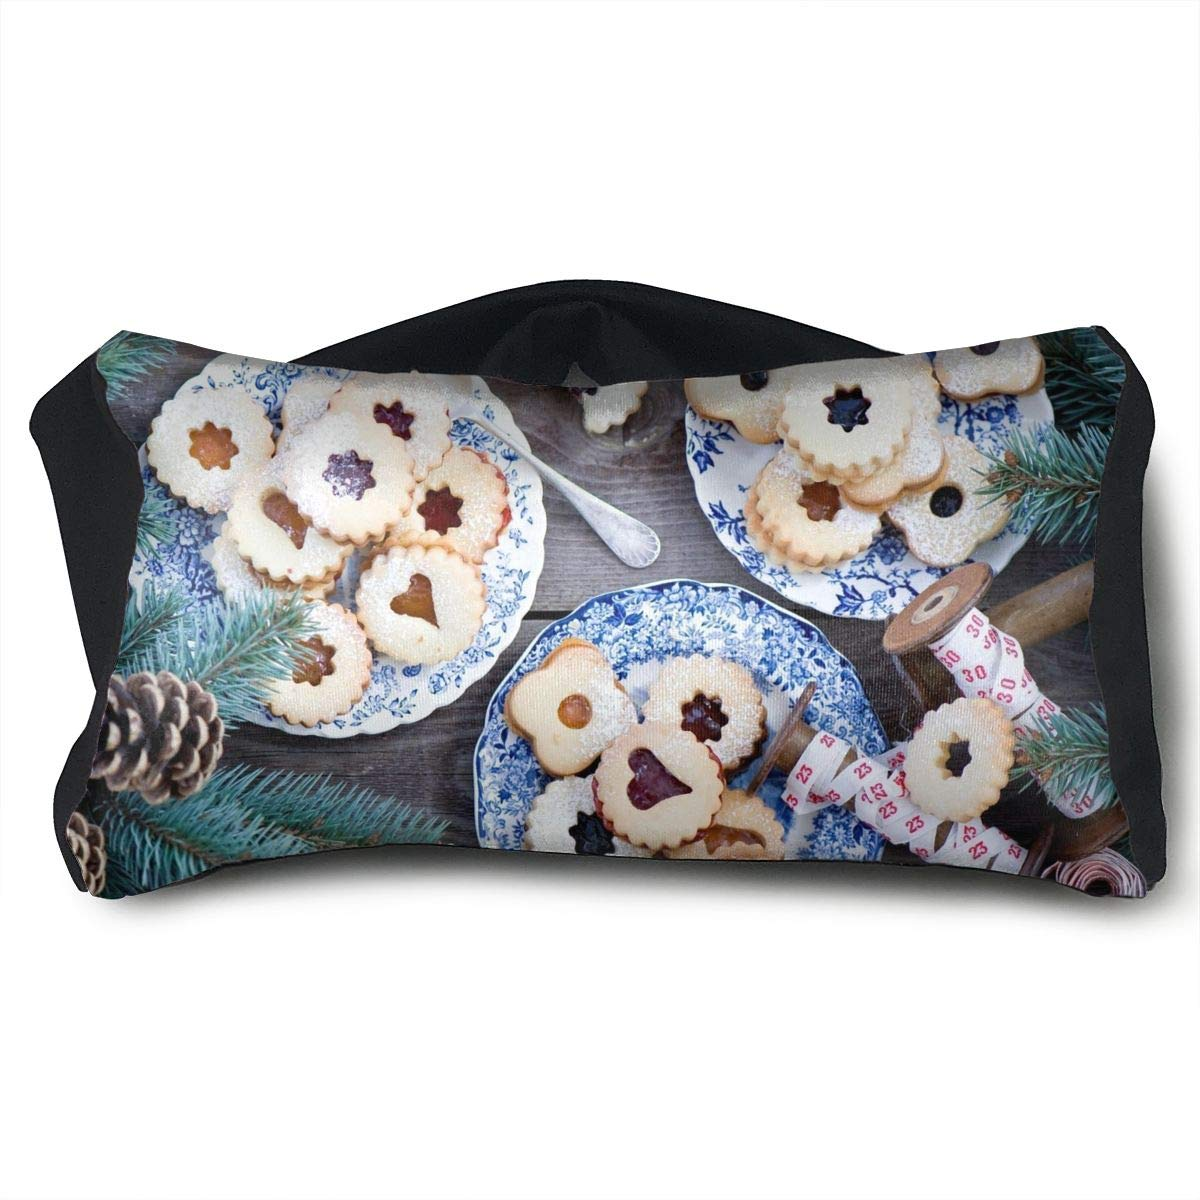 Eye Pillow Sleep Mask for Sleeping Migraine Headaches Stress Relief Biscuits Branches Eyeshade